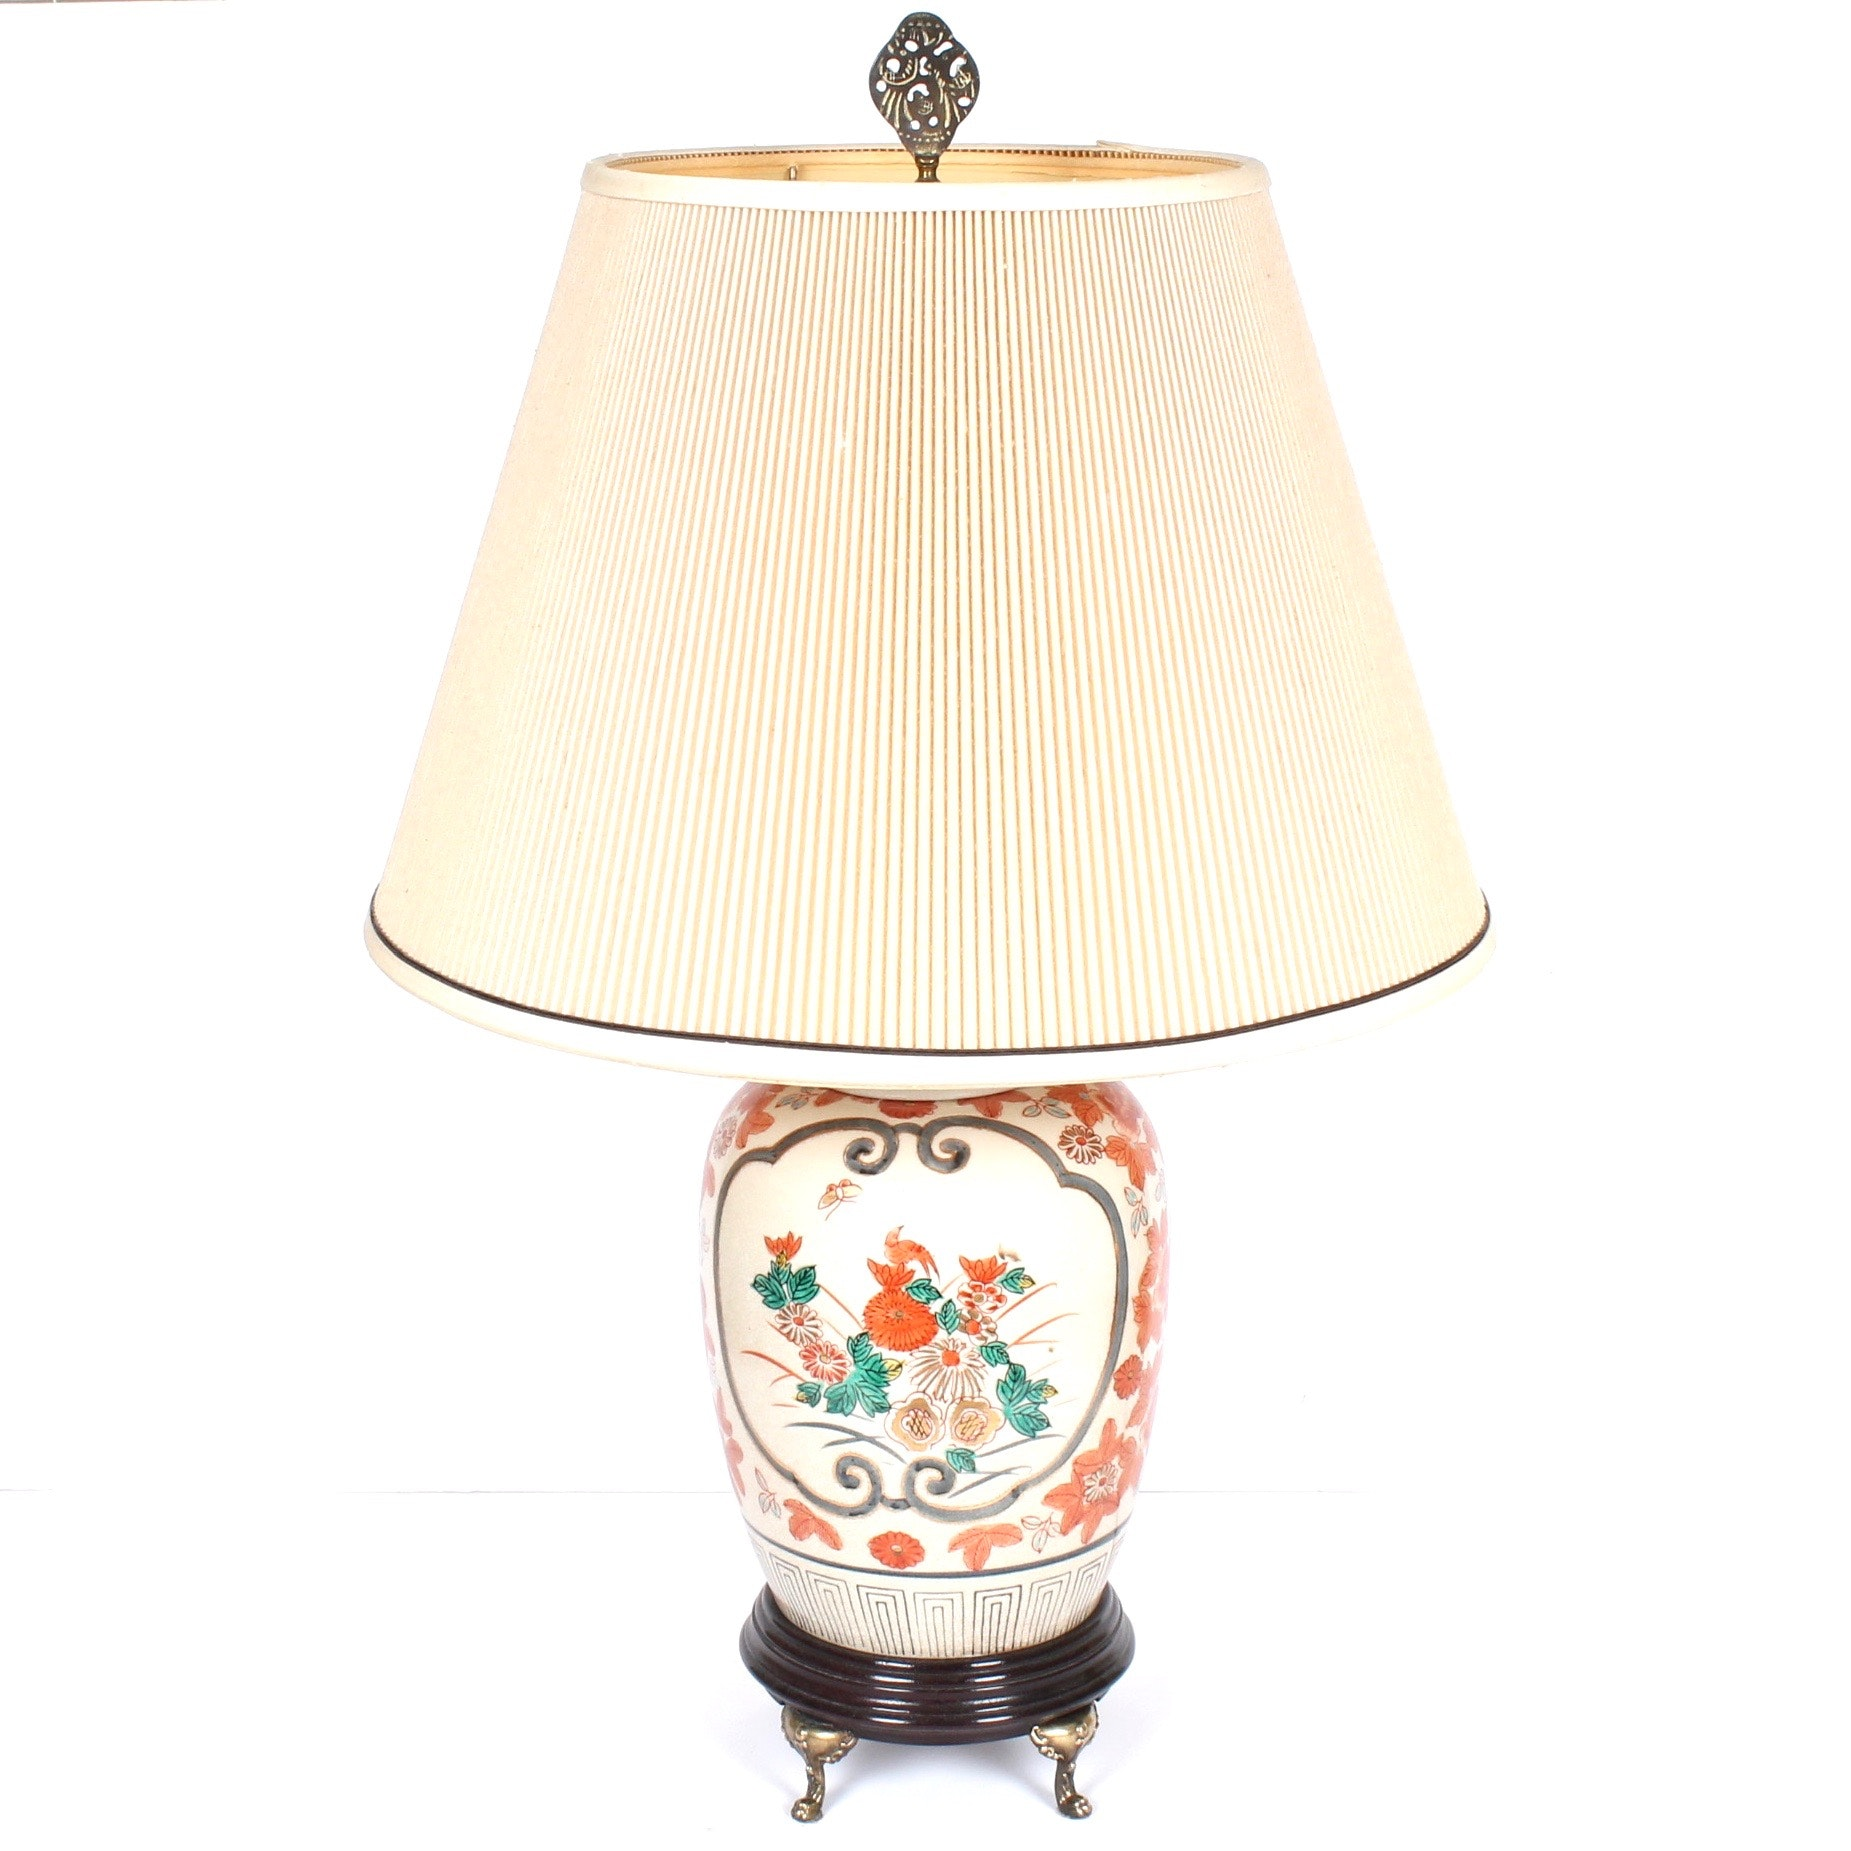 Vintage Chinese Brass Footed Ceramic Table Lamp